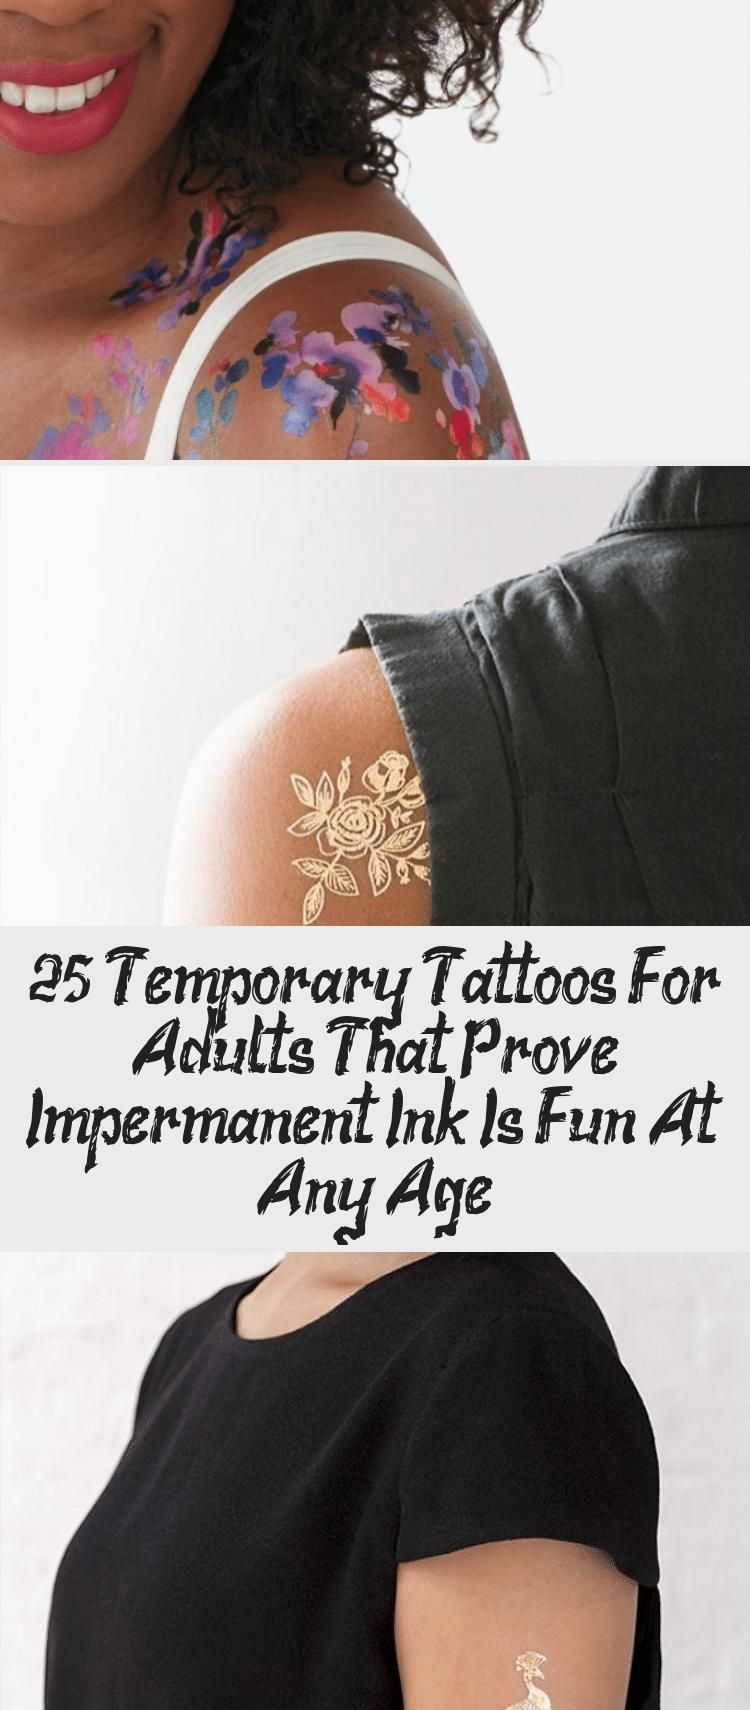 Henna Tattoo Für Jungs: 25 Temporary Tattoos For Adults That Prove Impermanent Ink